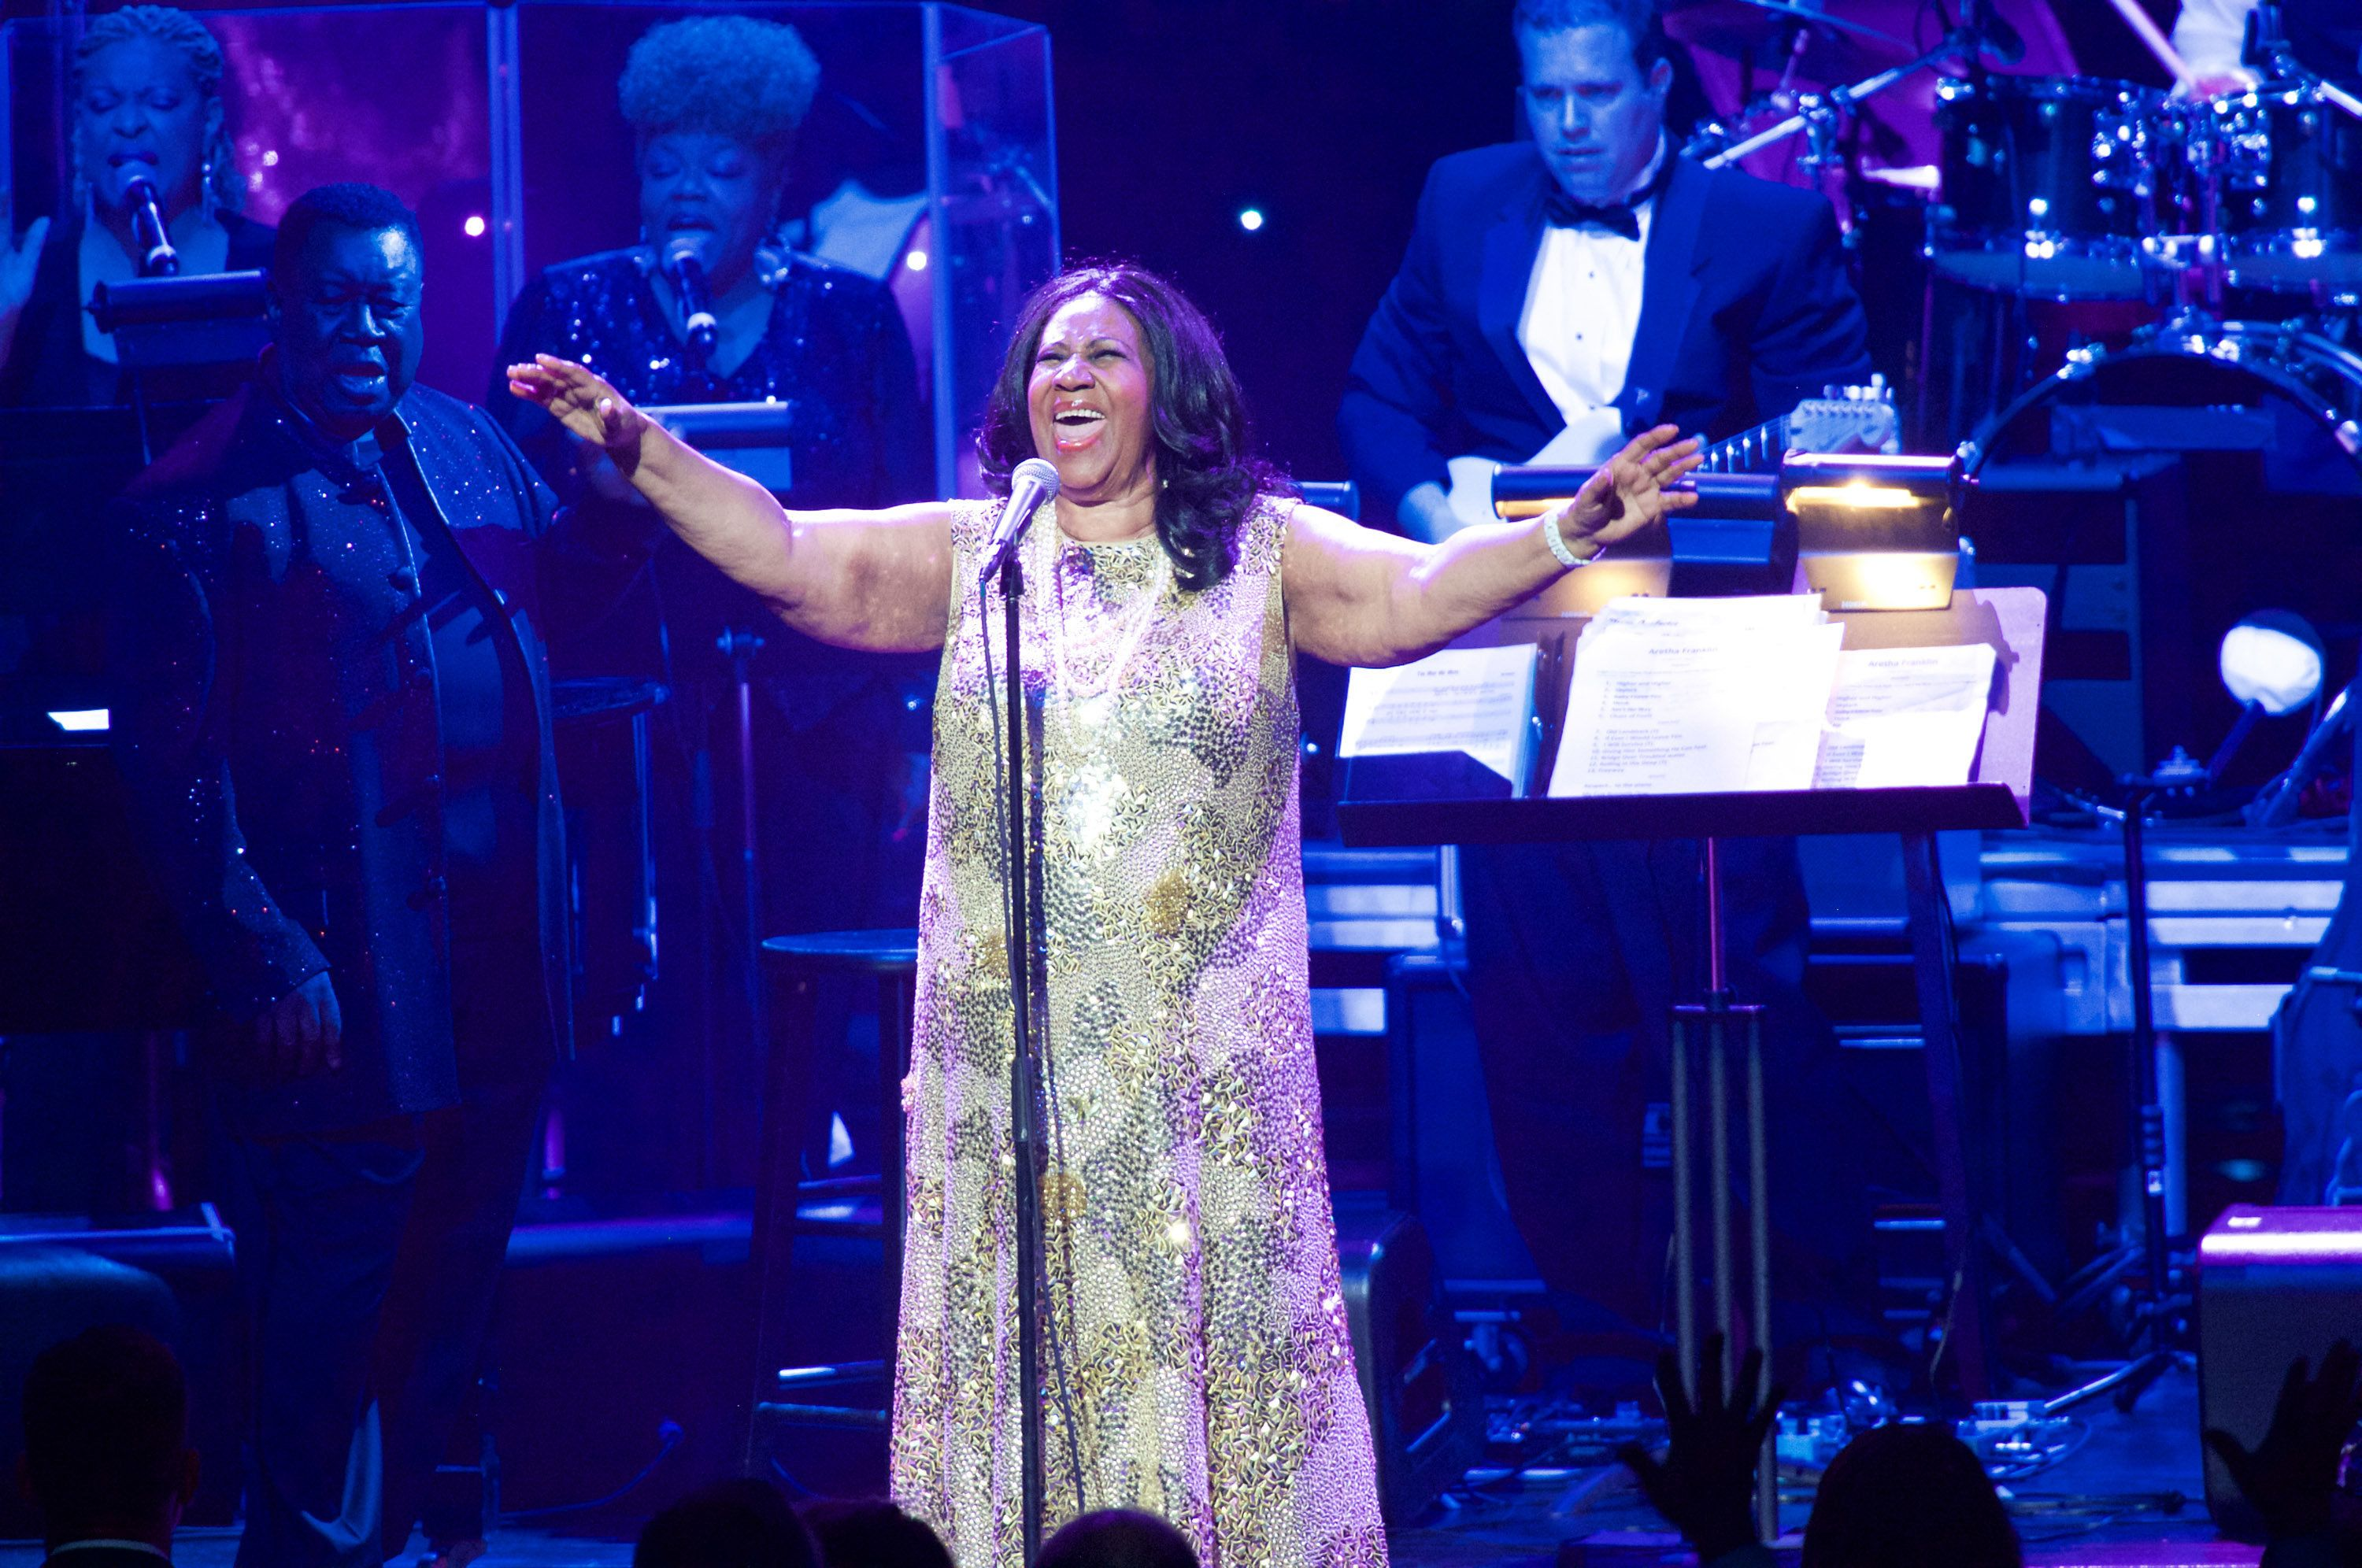 LOS ANGELES, CA - AUGUST 02: Aretha Franklin performs in concert at Microsoft Theater on August 2, 2015 in Los Angeles, California.  (Photo by Earl Gibson III/WireImage)